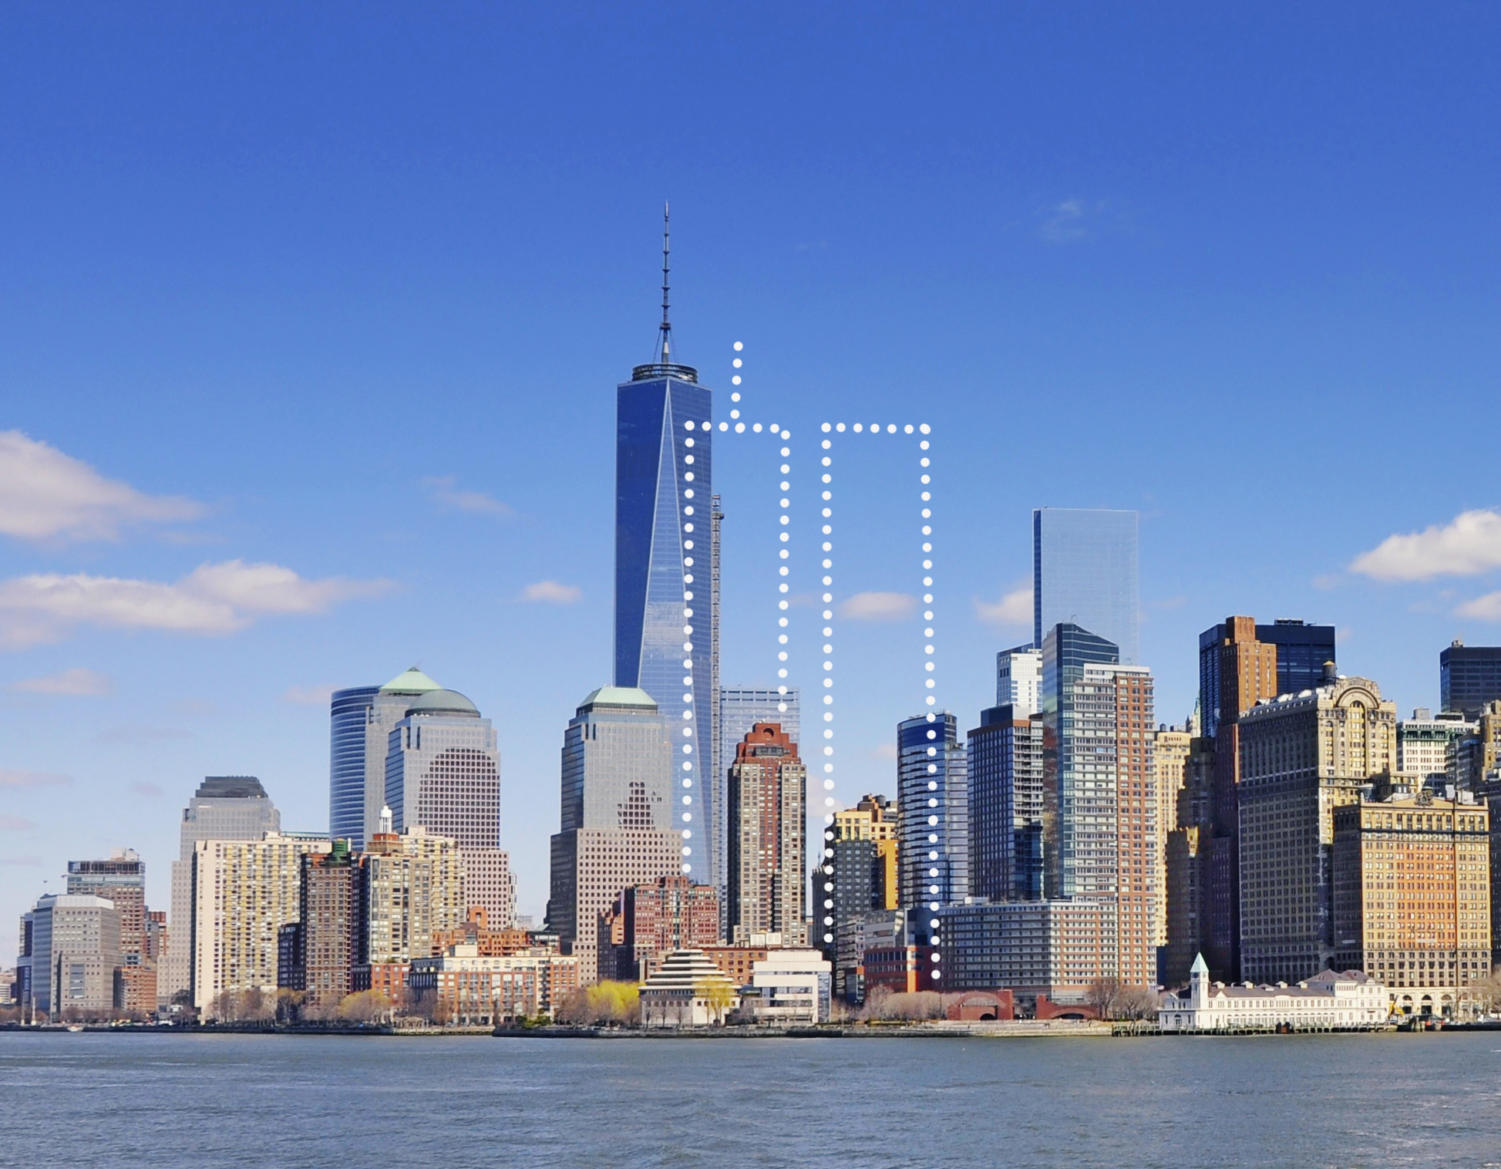 The modern New York skyline exists without the twin towers.